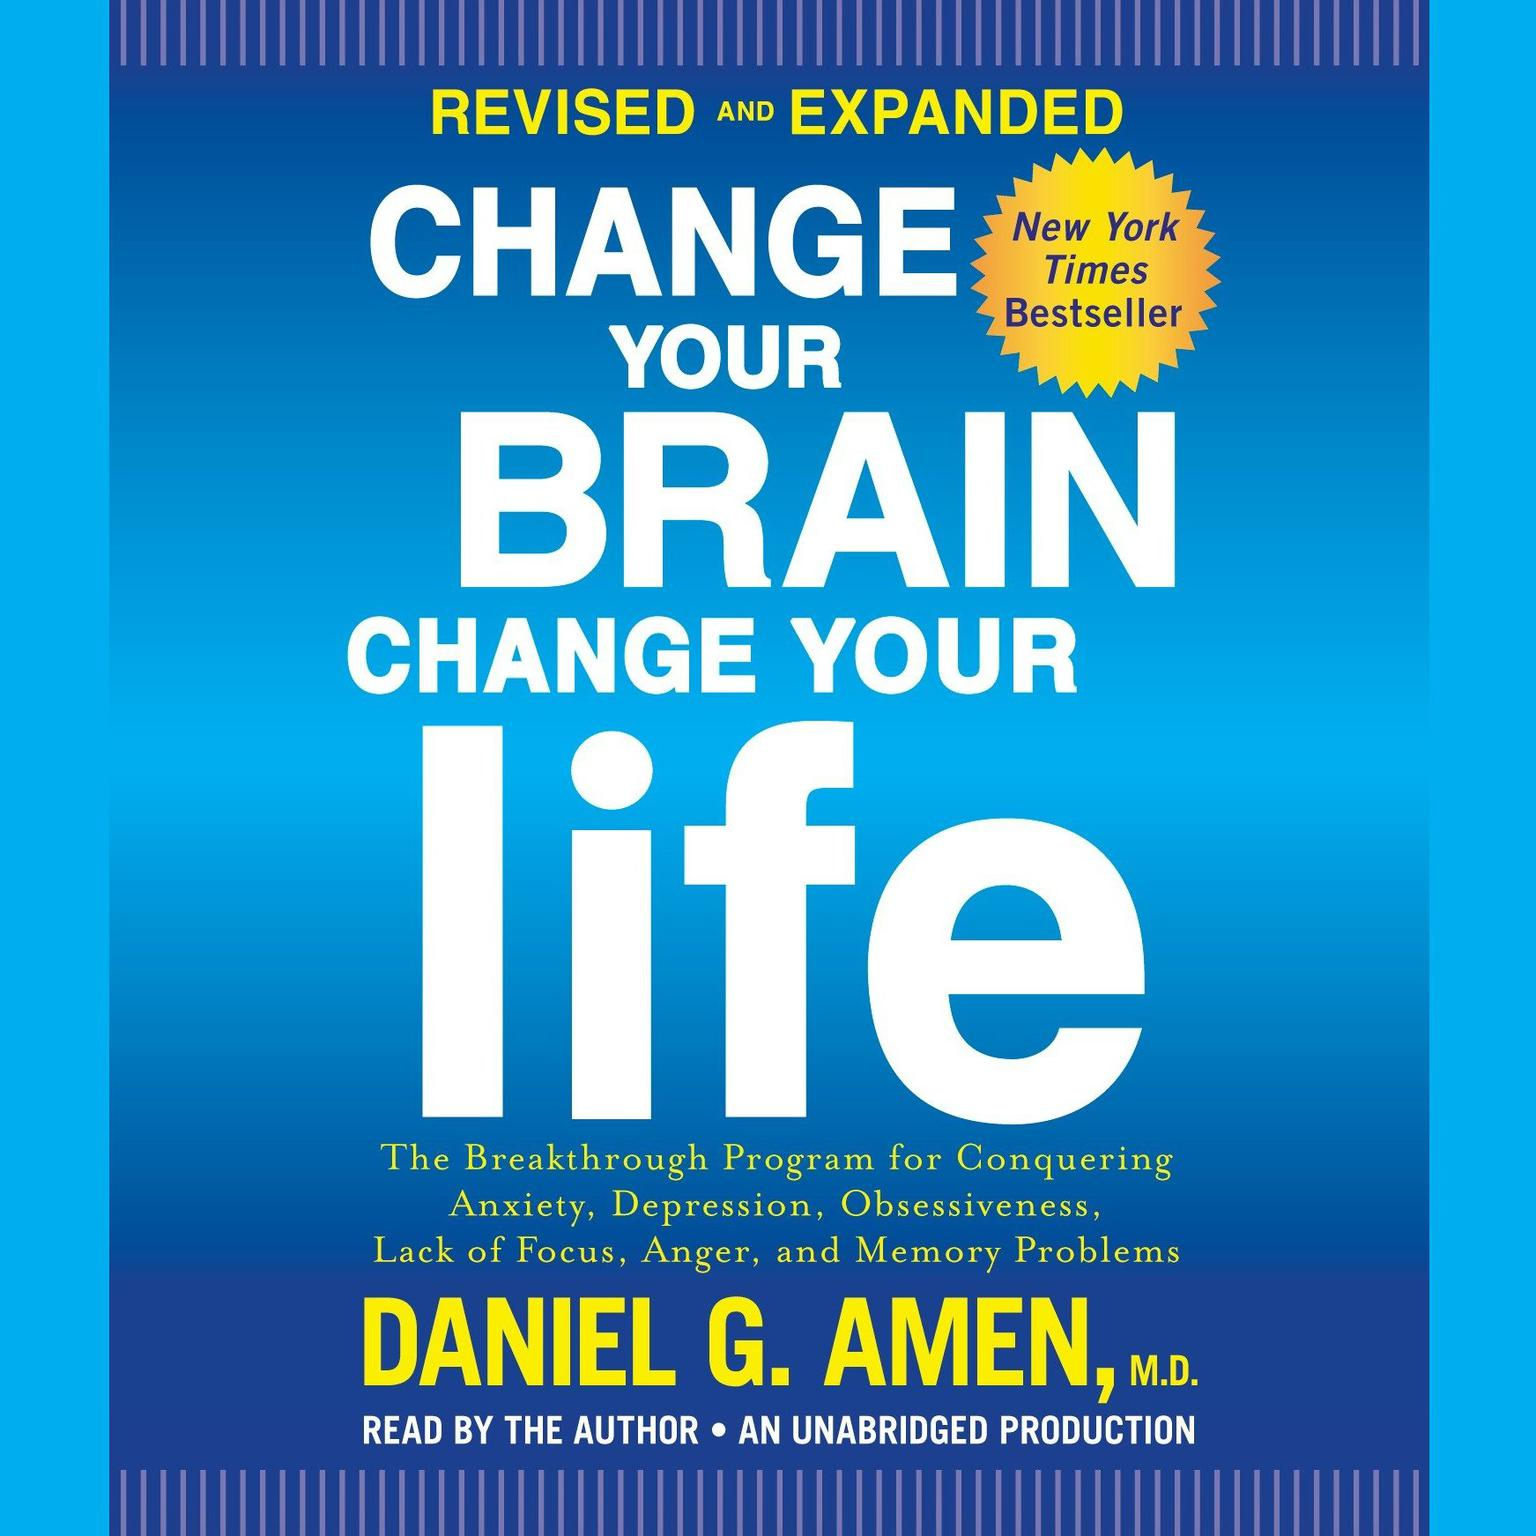 Printable Change Your Brain, Change Your Life (Revised and Expanded): The Breakthrough Program for Conquering Anxiety, Depression, Obsessiveness, Lack of Focus, Anger, and Memory Problems Audiobook Cover Art